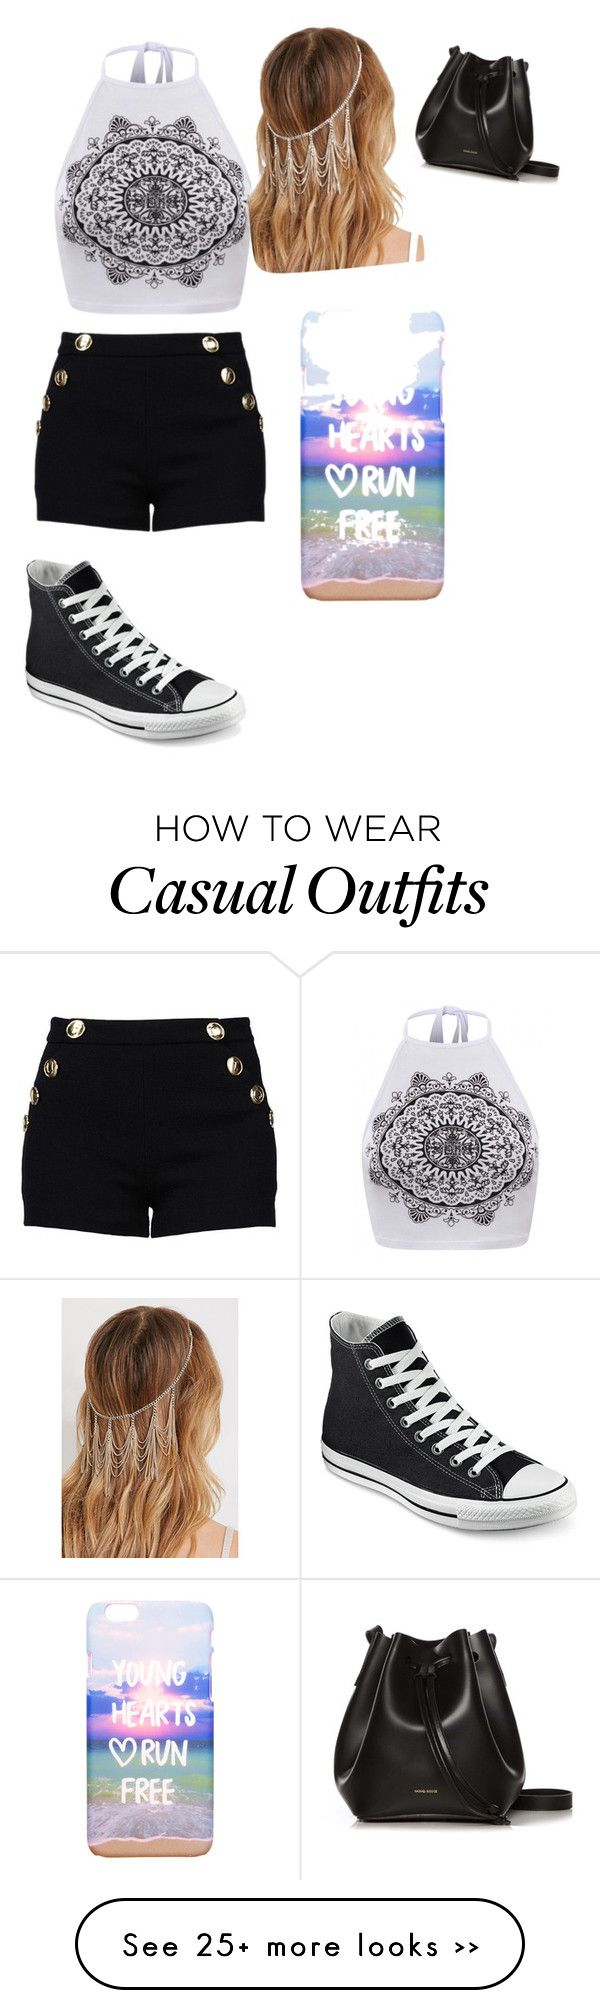 """casual"" by fashionselena on Polyvore"